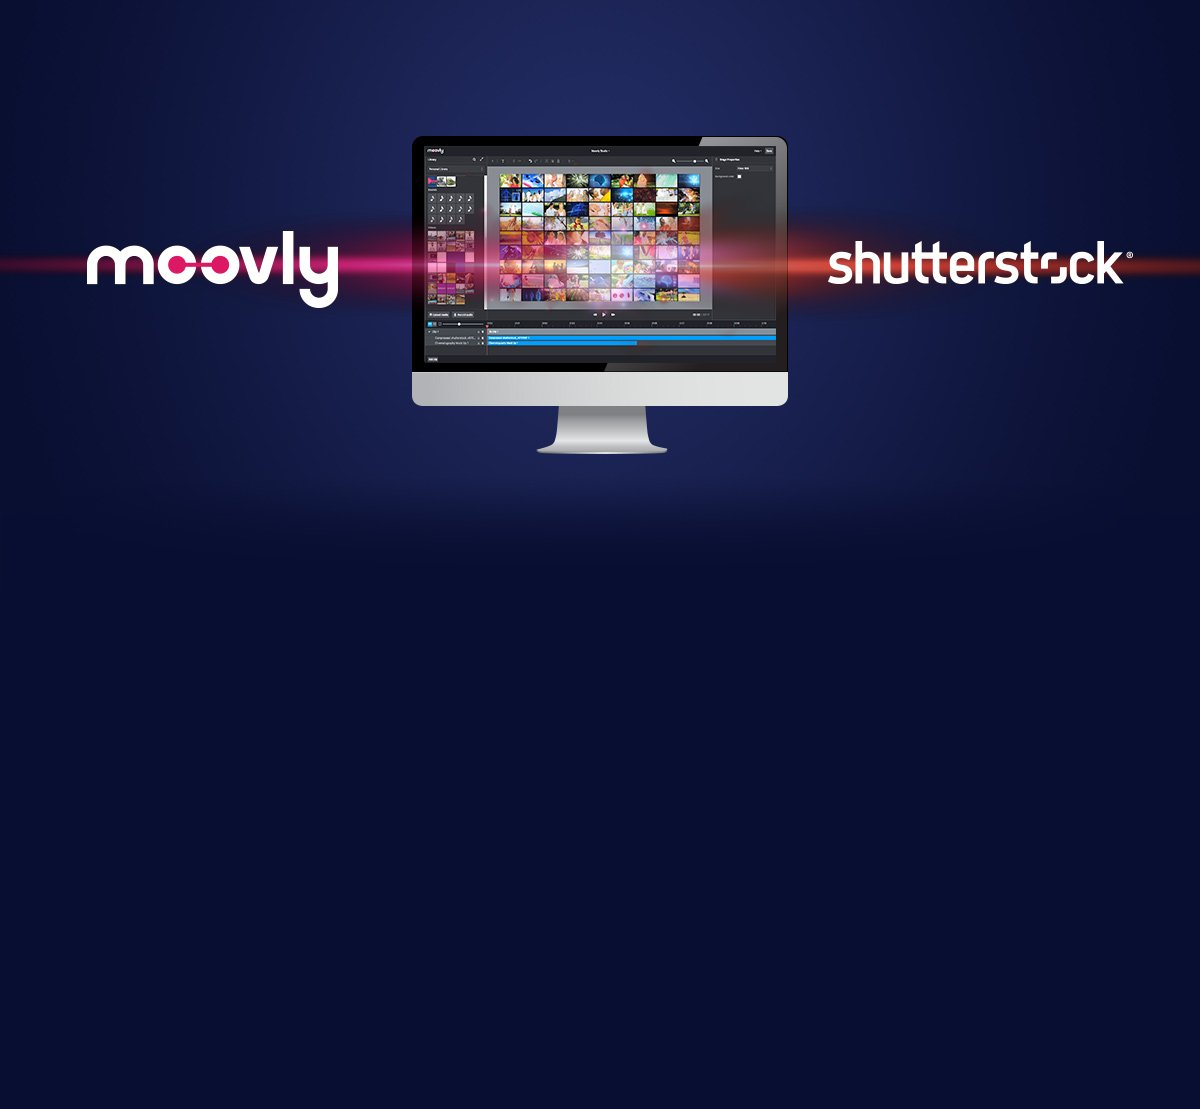 Shutterstock-moovly-web-background